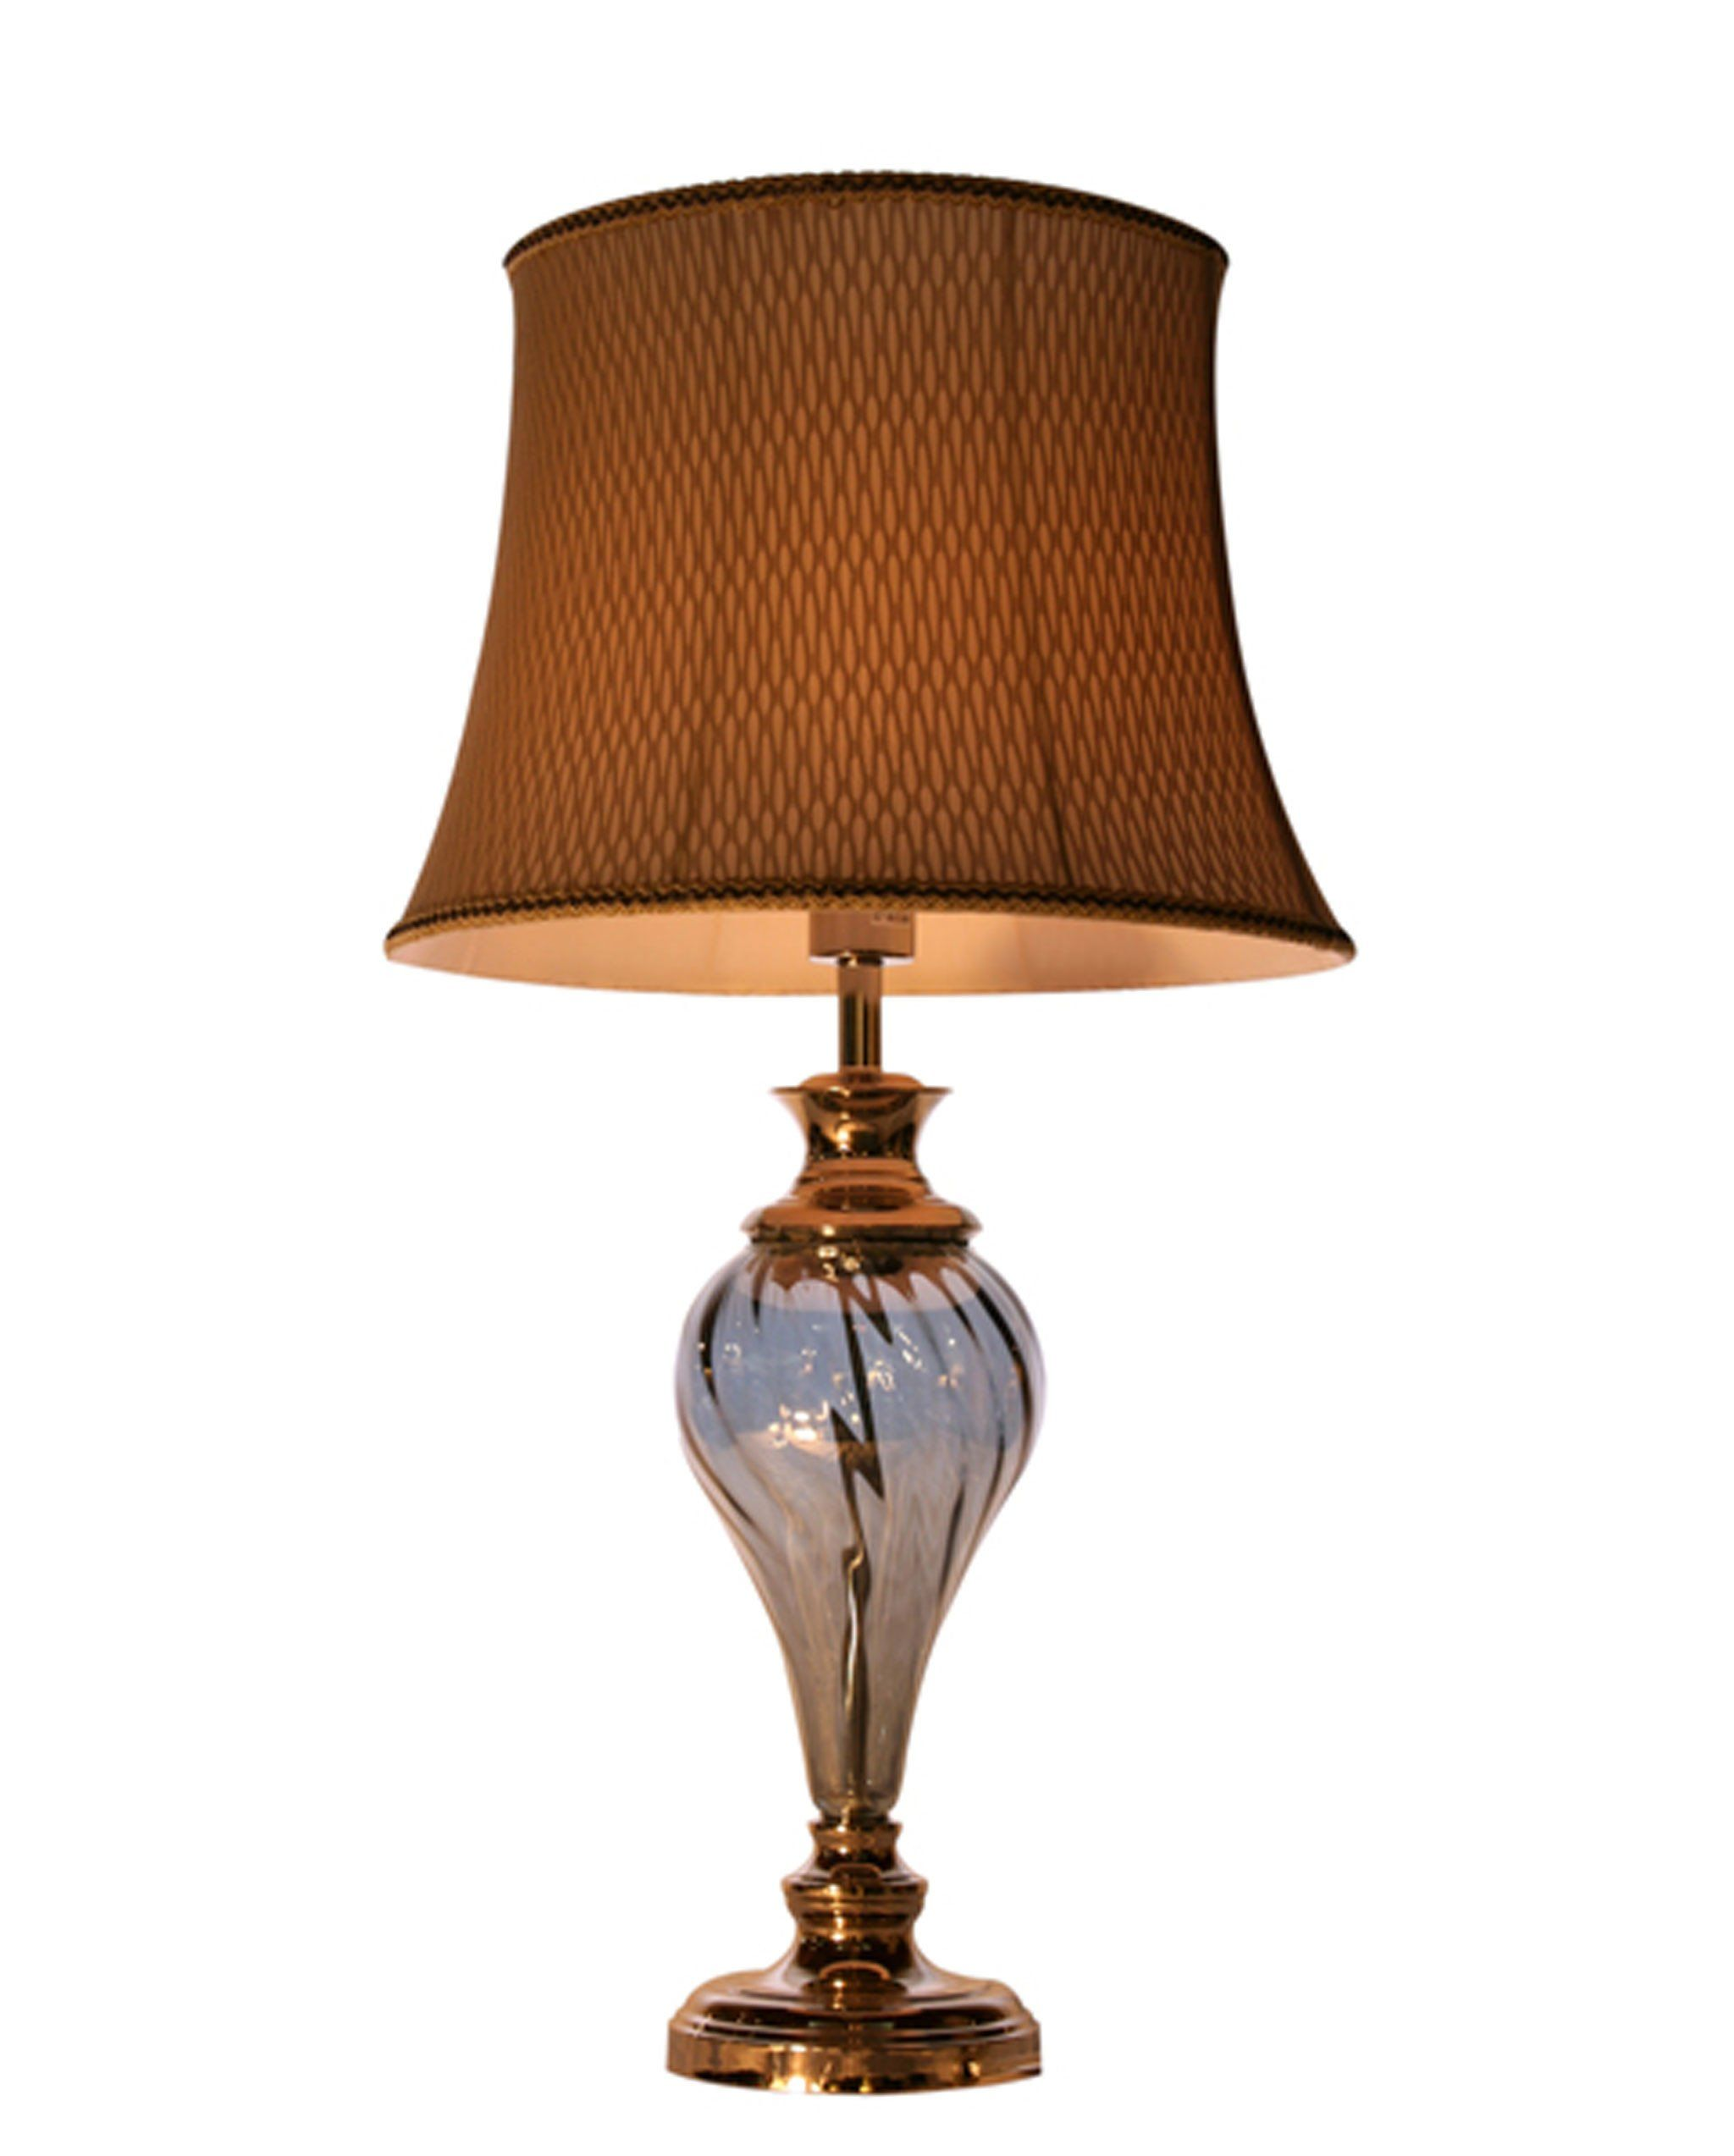 TABLE LAMP KH-1-323 Lamps HOMDECACC